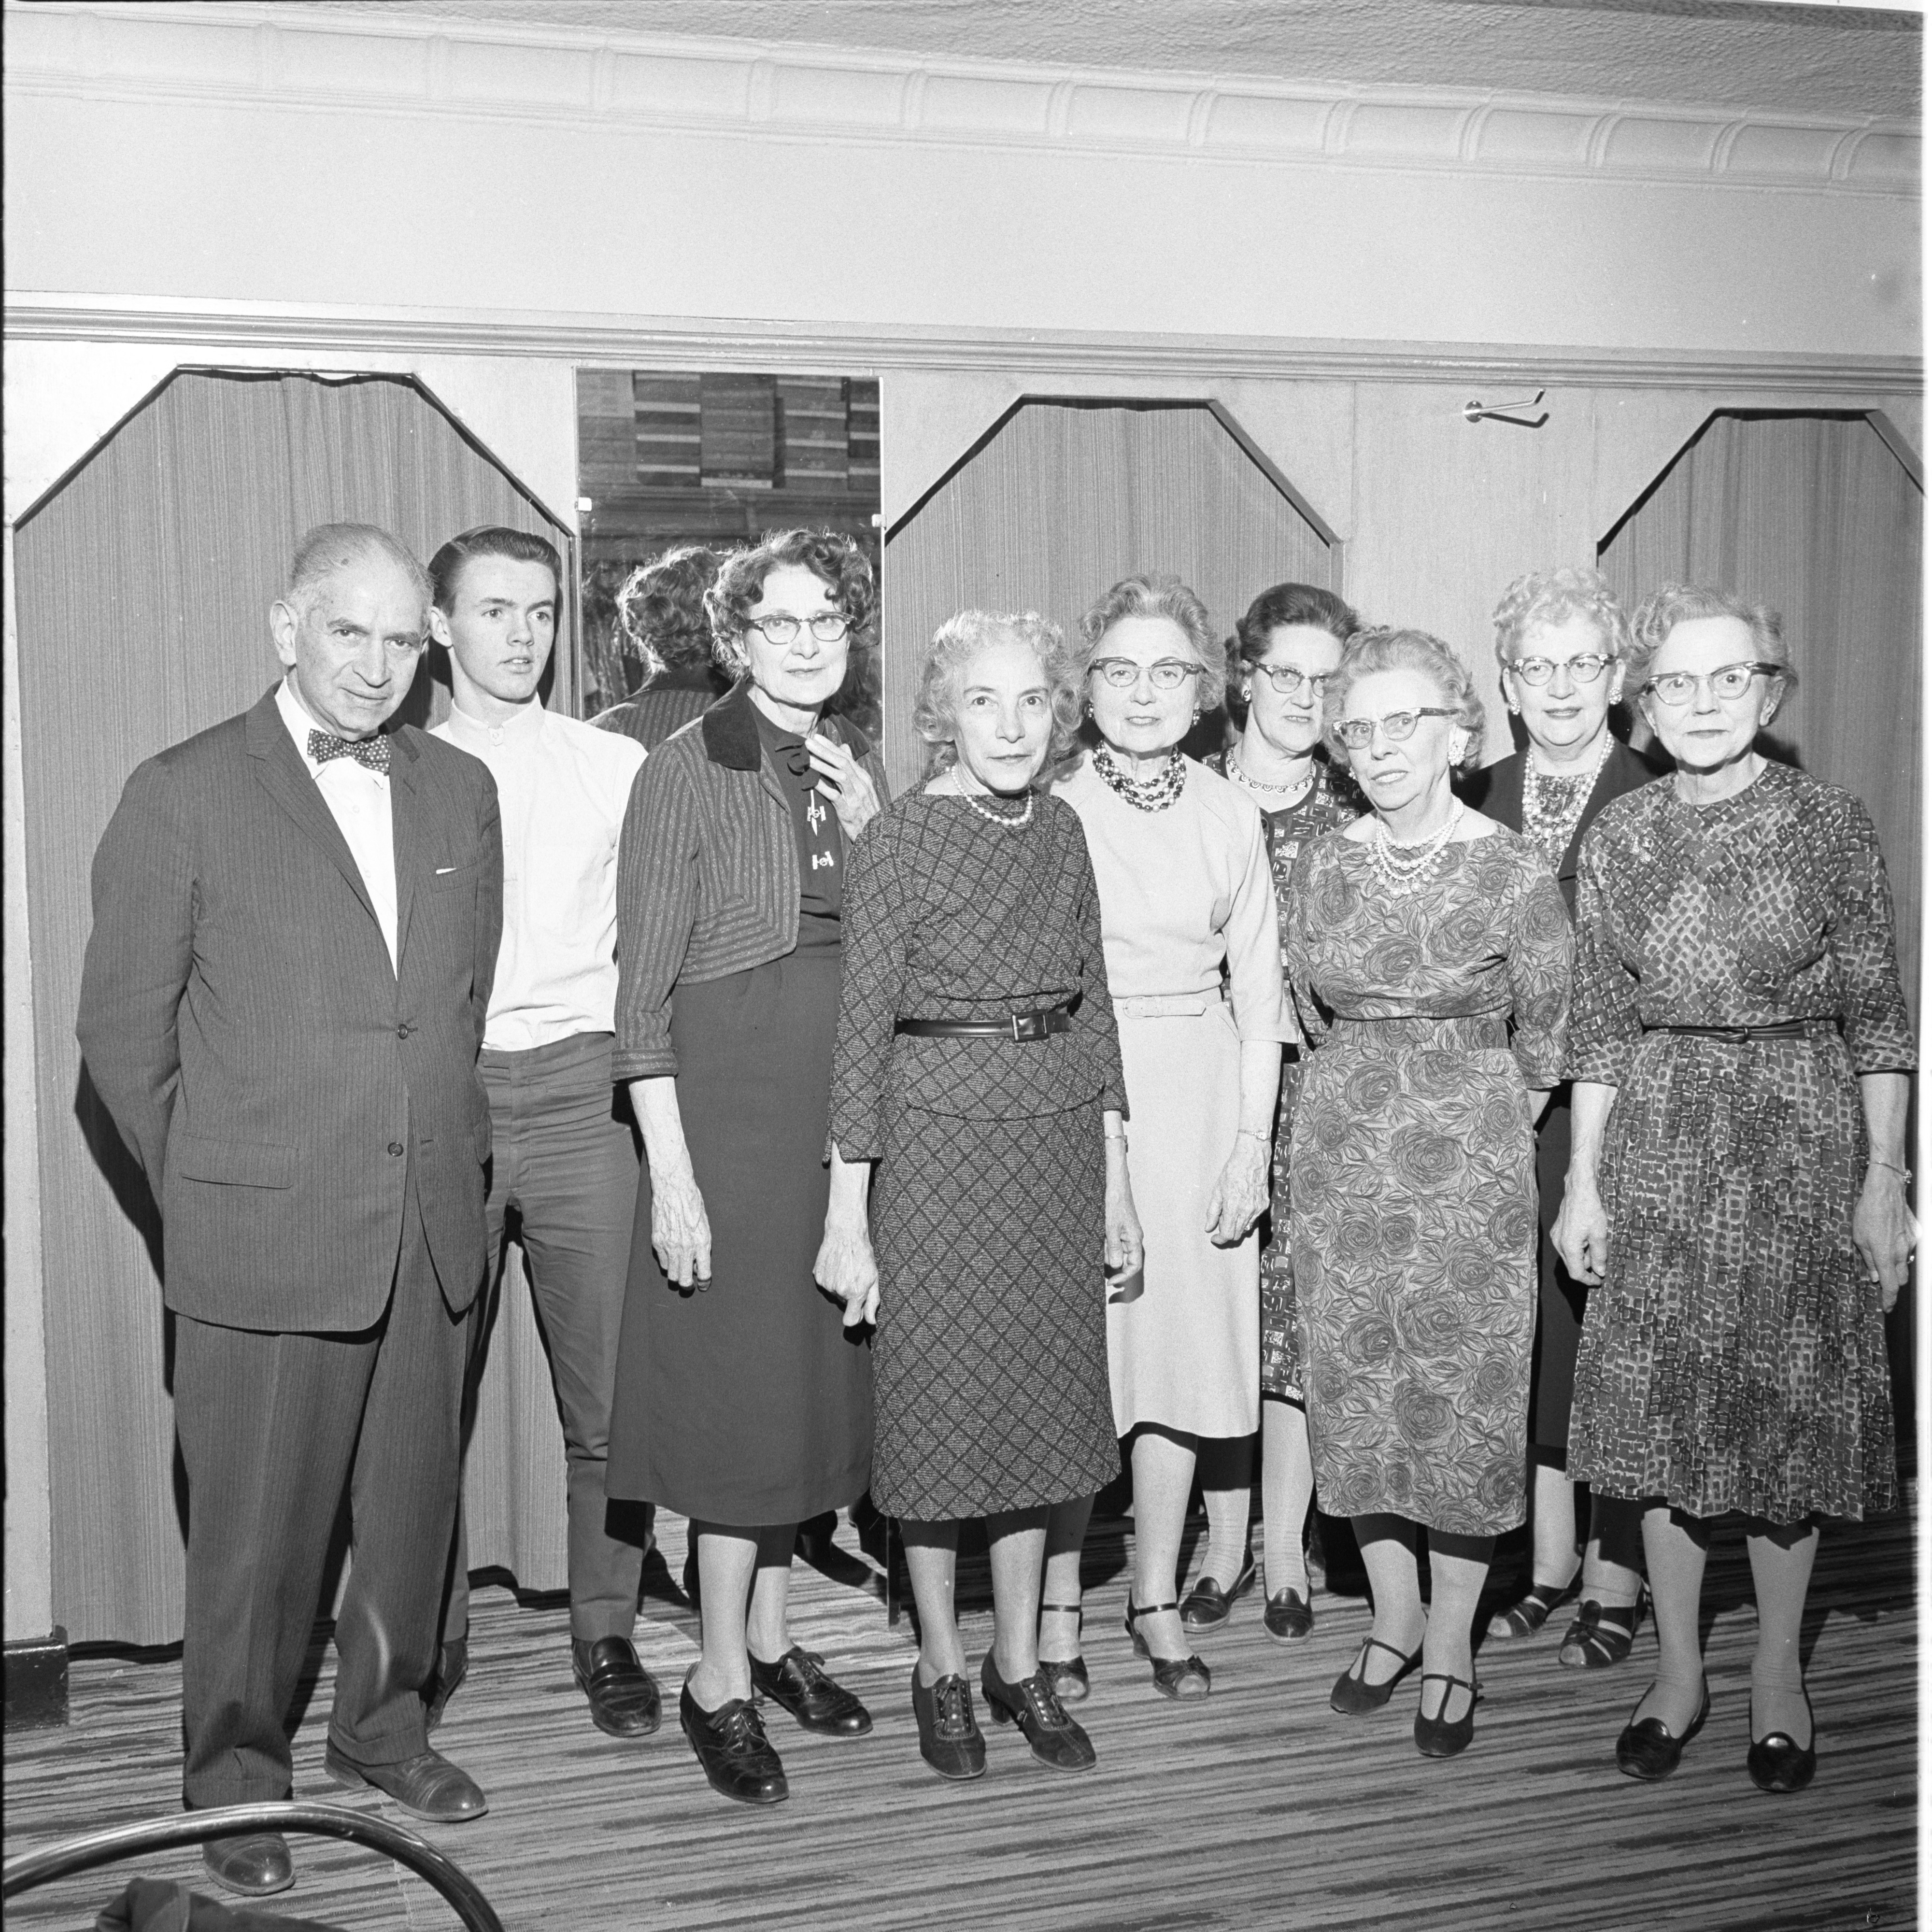 Kessel's Fashion Shop Employees, March 1963 image